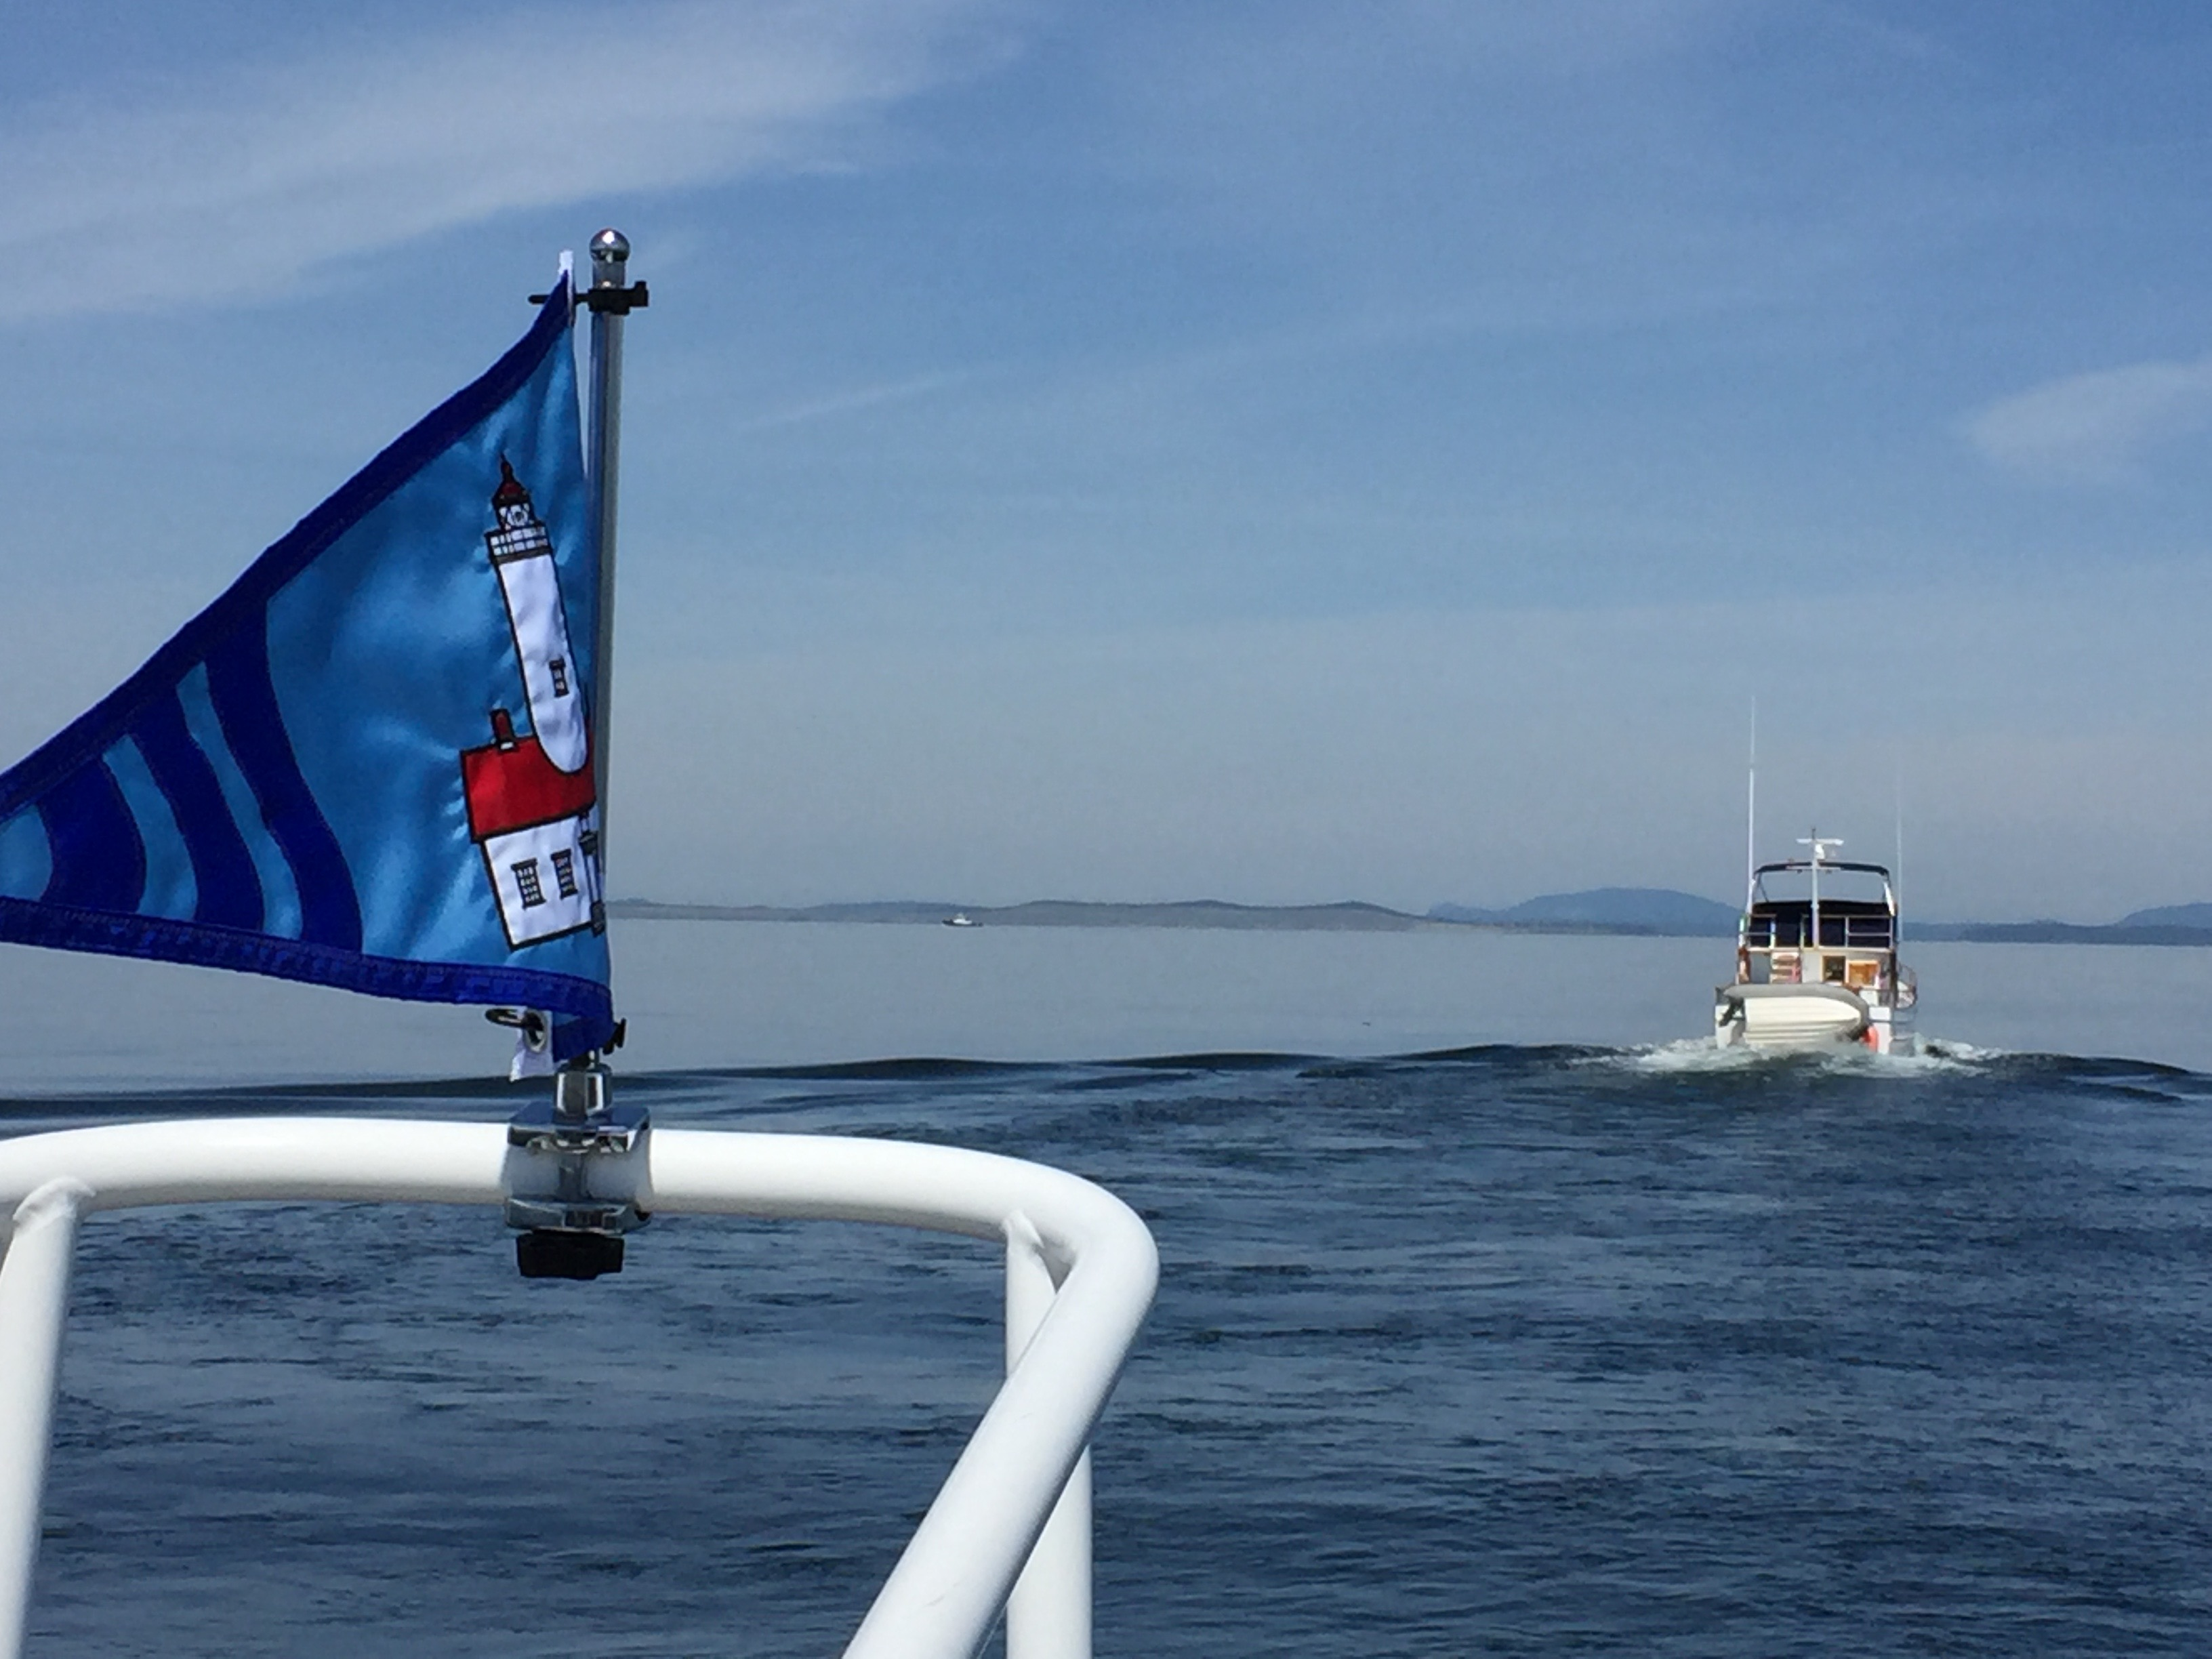 flying the North Olympic Sail & Power Squadron Burgee